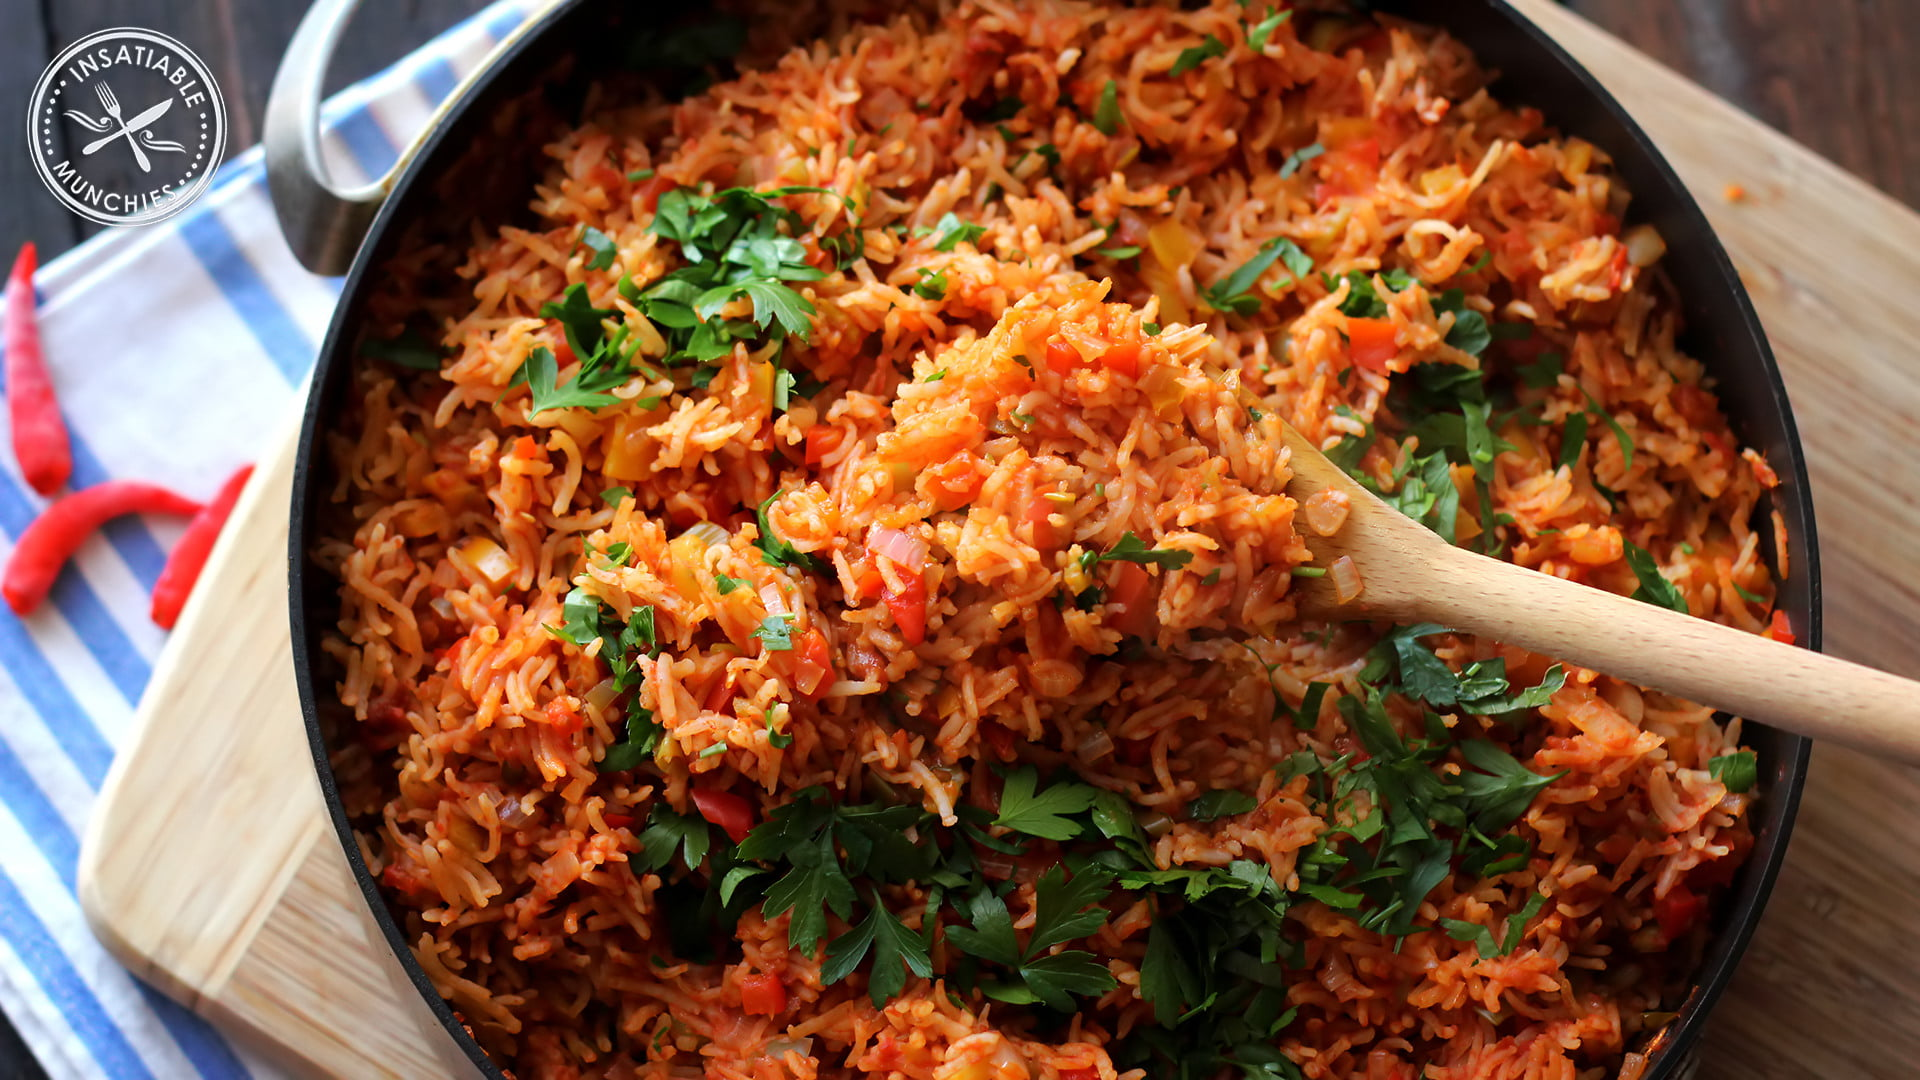 Rice, flavoured with capsicum, chilli and tomato, is cooked in a deep pan till it's fragrant and tender.